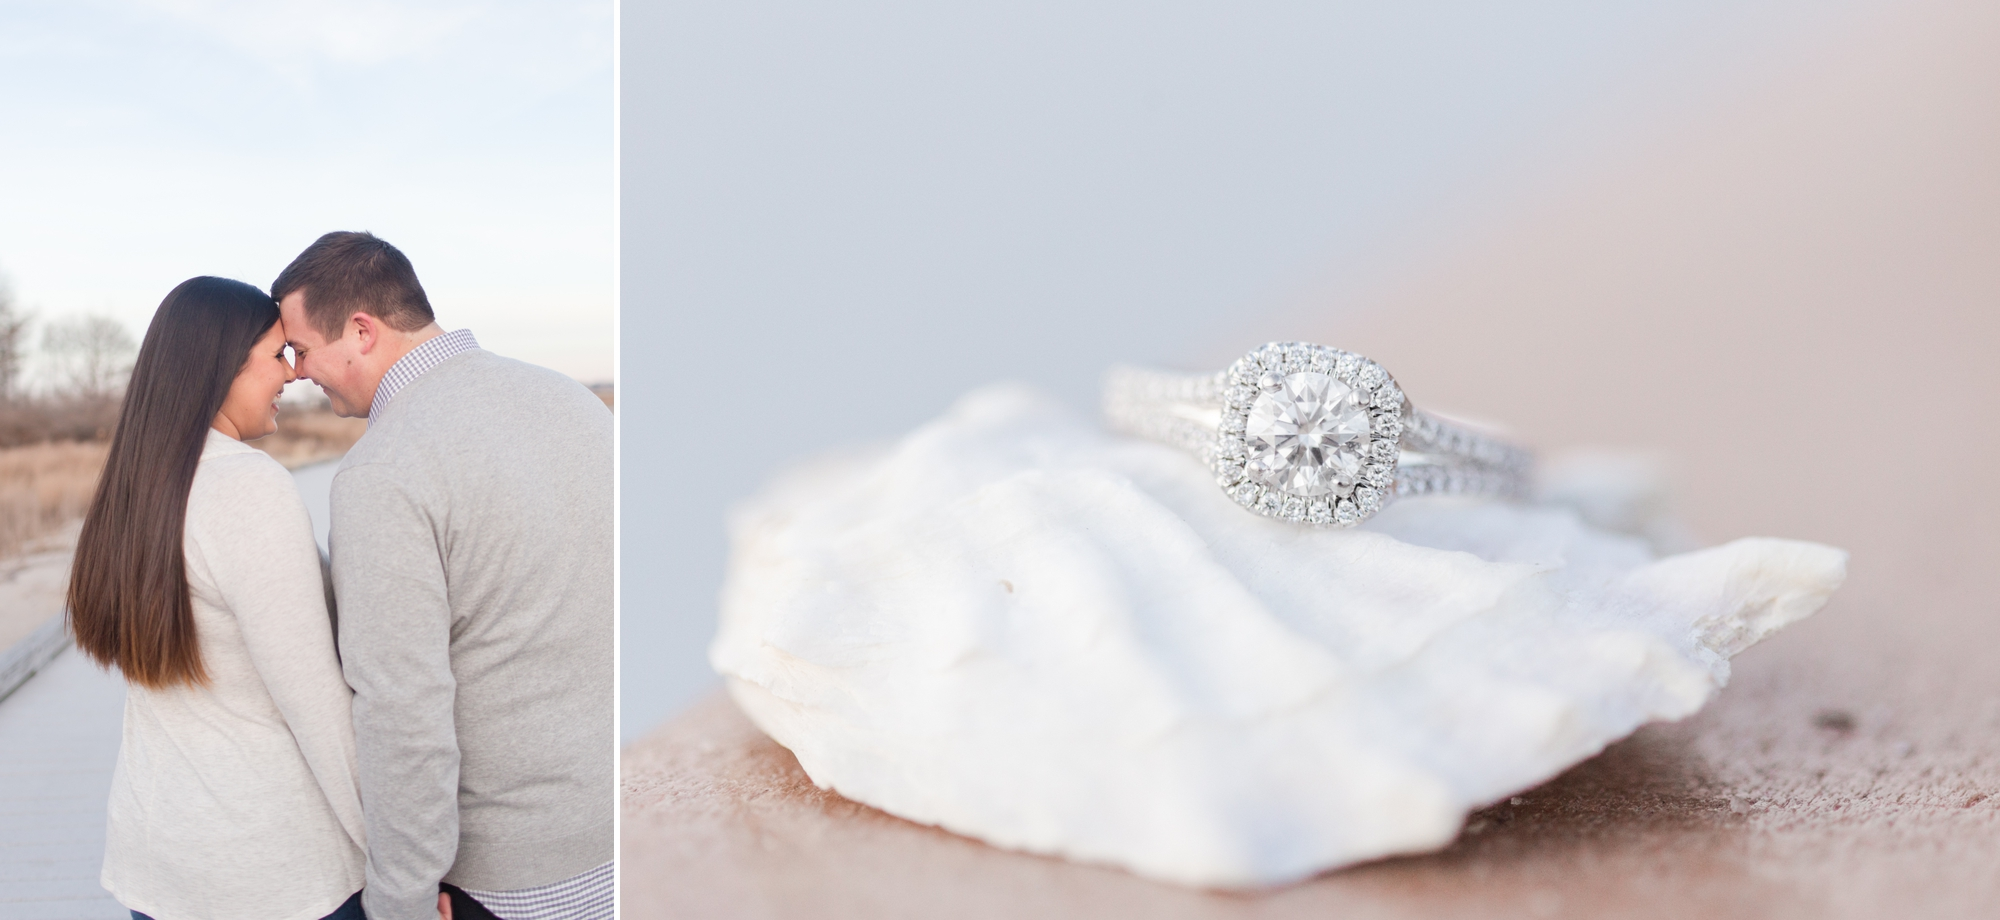 Best of 2016 | Milford, CT Engagement Session at Walnut Beach | CT, NYC, New England + Destination Luxury Wedding + Engagement Photographer | Shaina Lee Photography